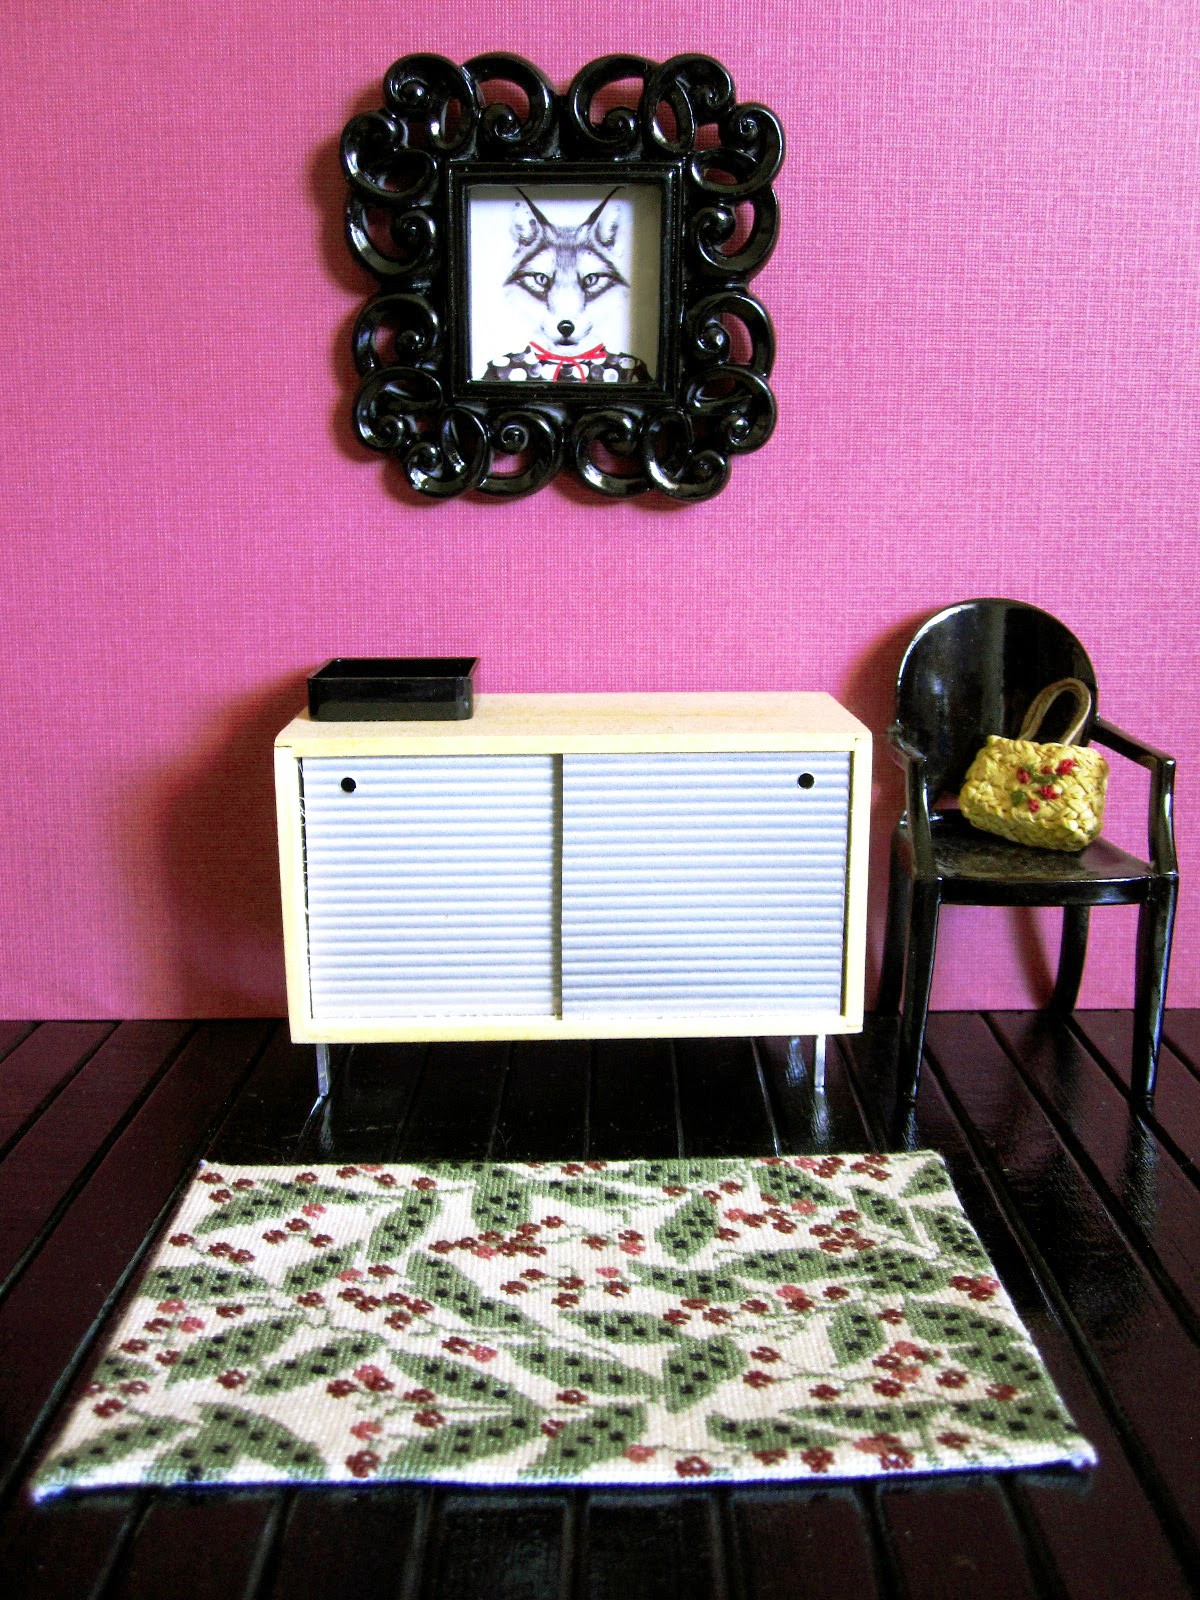 Modern doll's house miniature hallway with black floorboards and berry-coloured wall. On the floor is a cream rug with a pattern of leaves and berry stalks in soft greens,  berry colours and black.